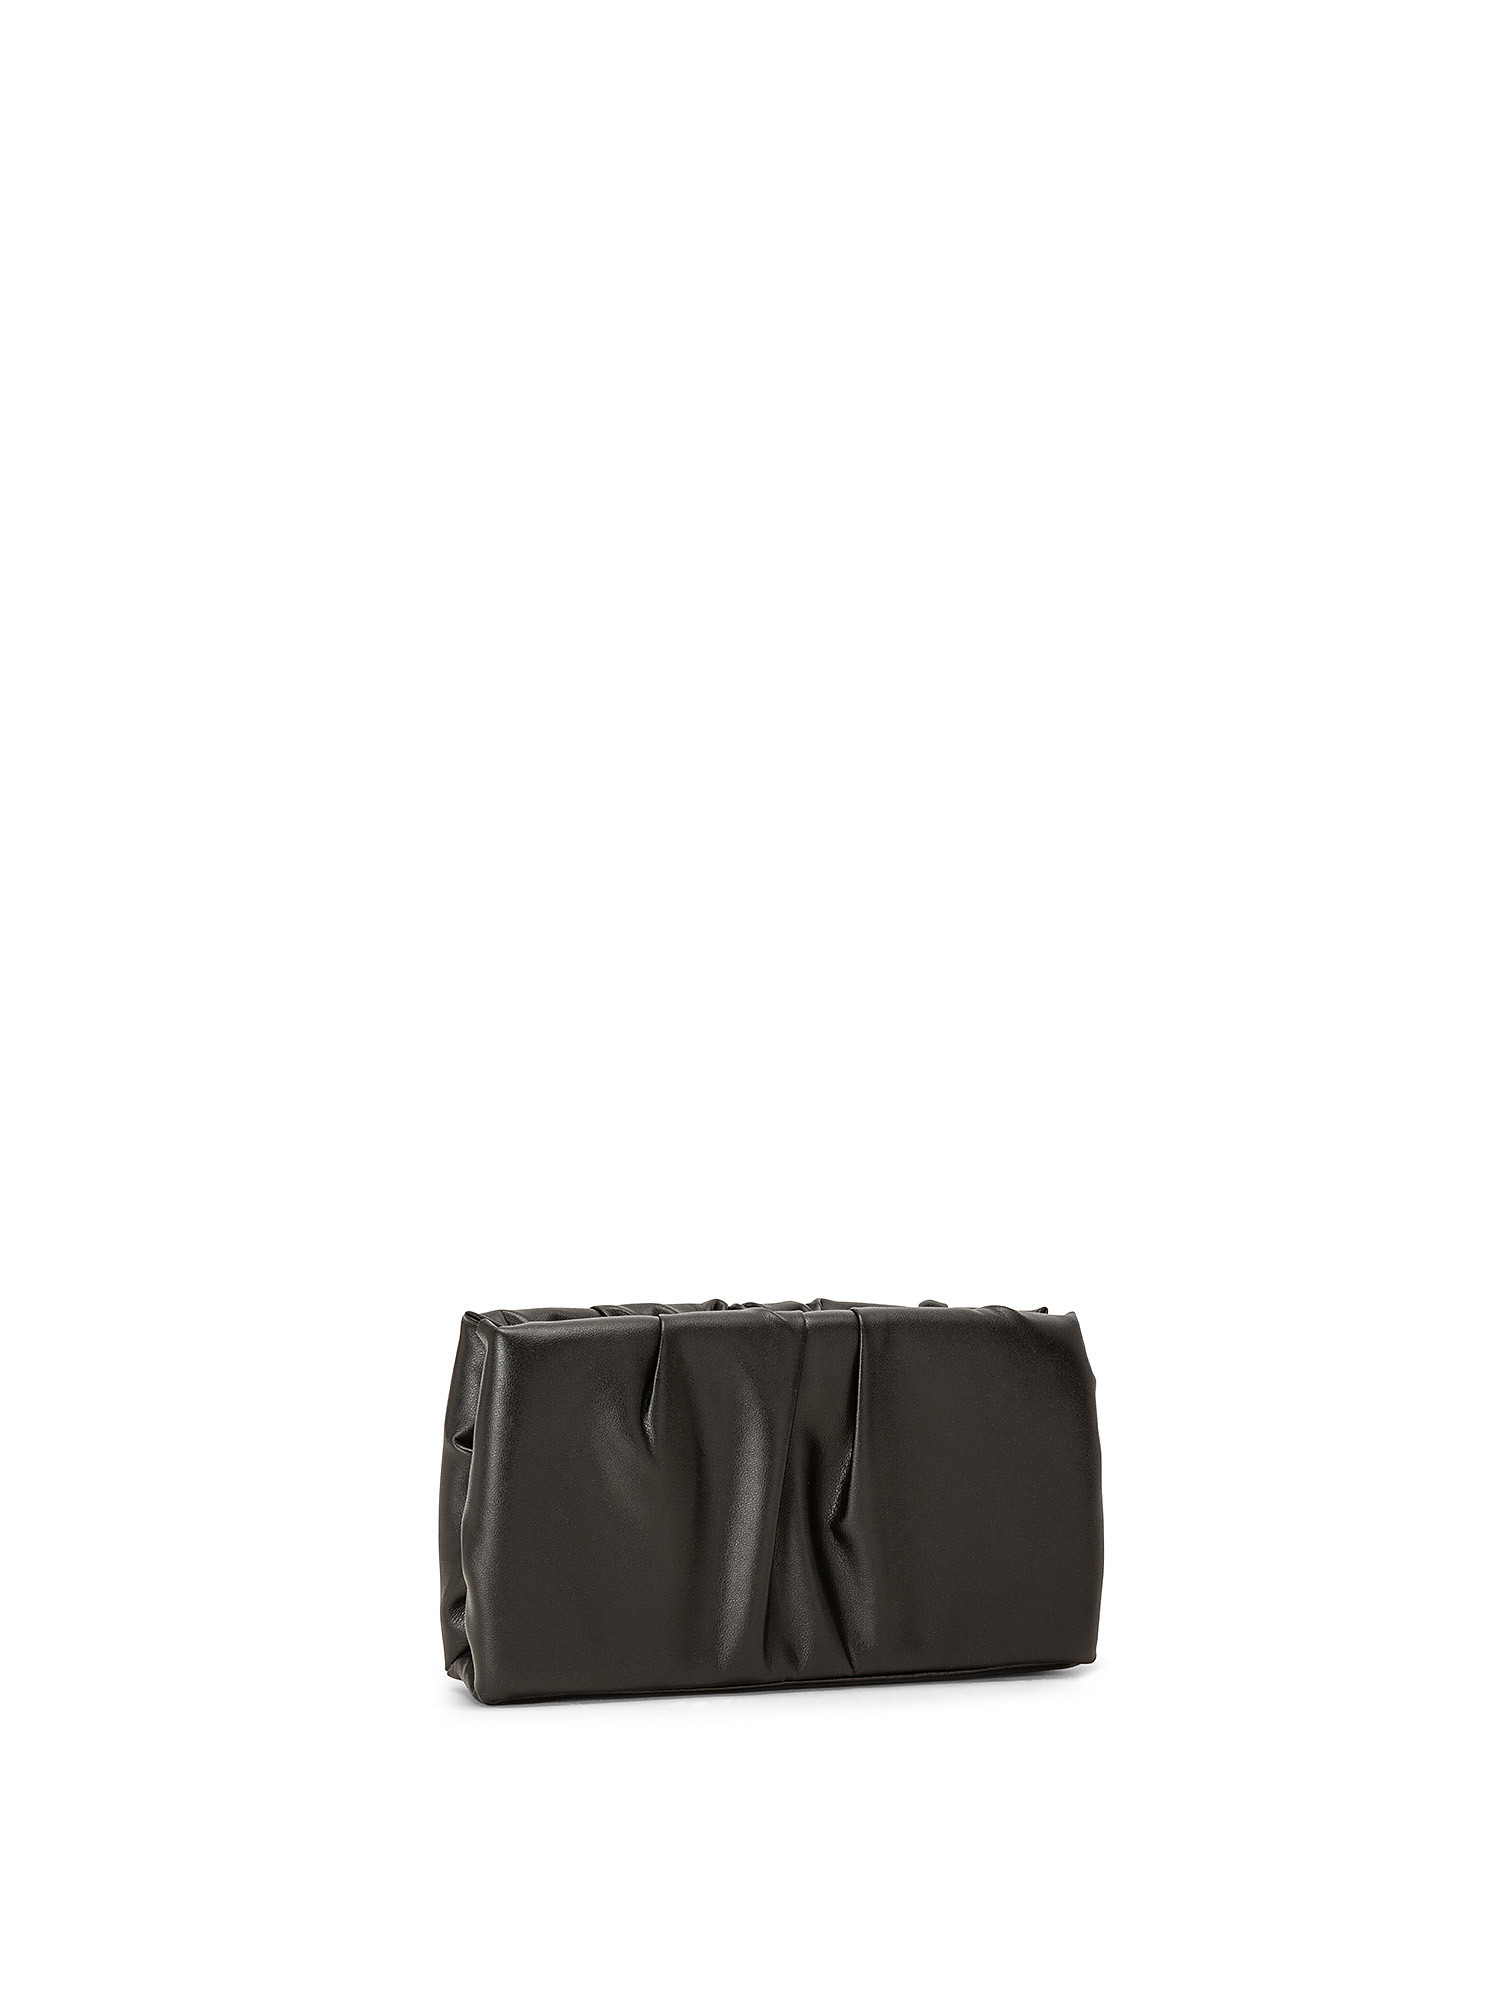 Ruched Frame Clutch, Nero, large image number 1